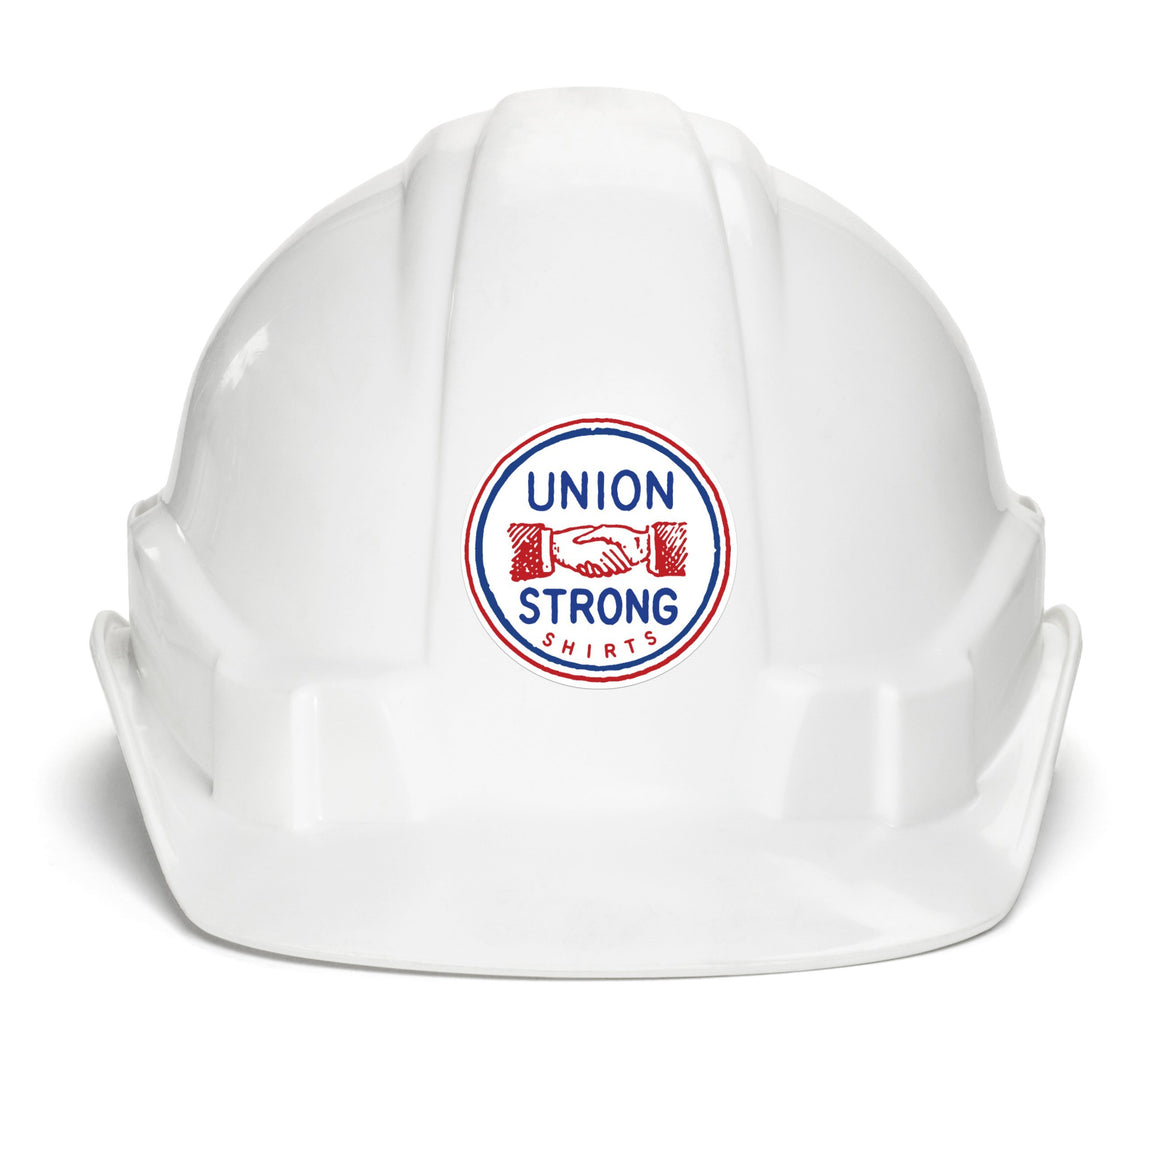 Union Strong Shirts - Classic 2 Color Logo Sticker Stickers unionstrongshirts